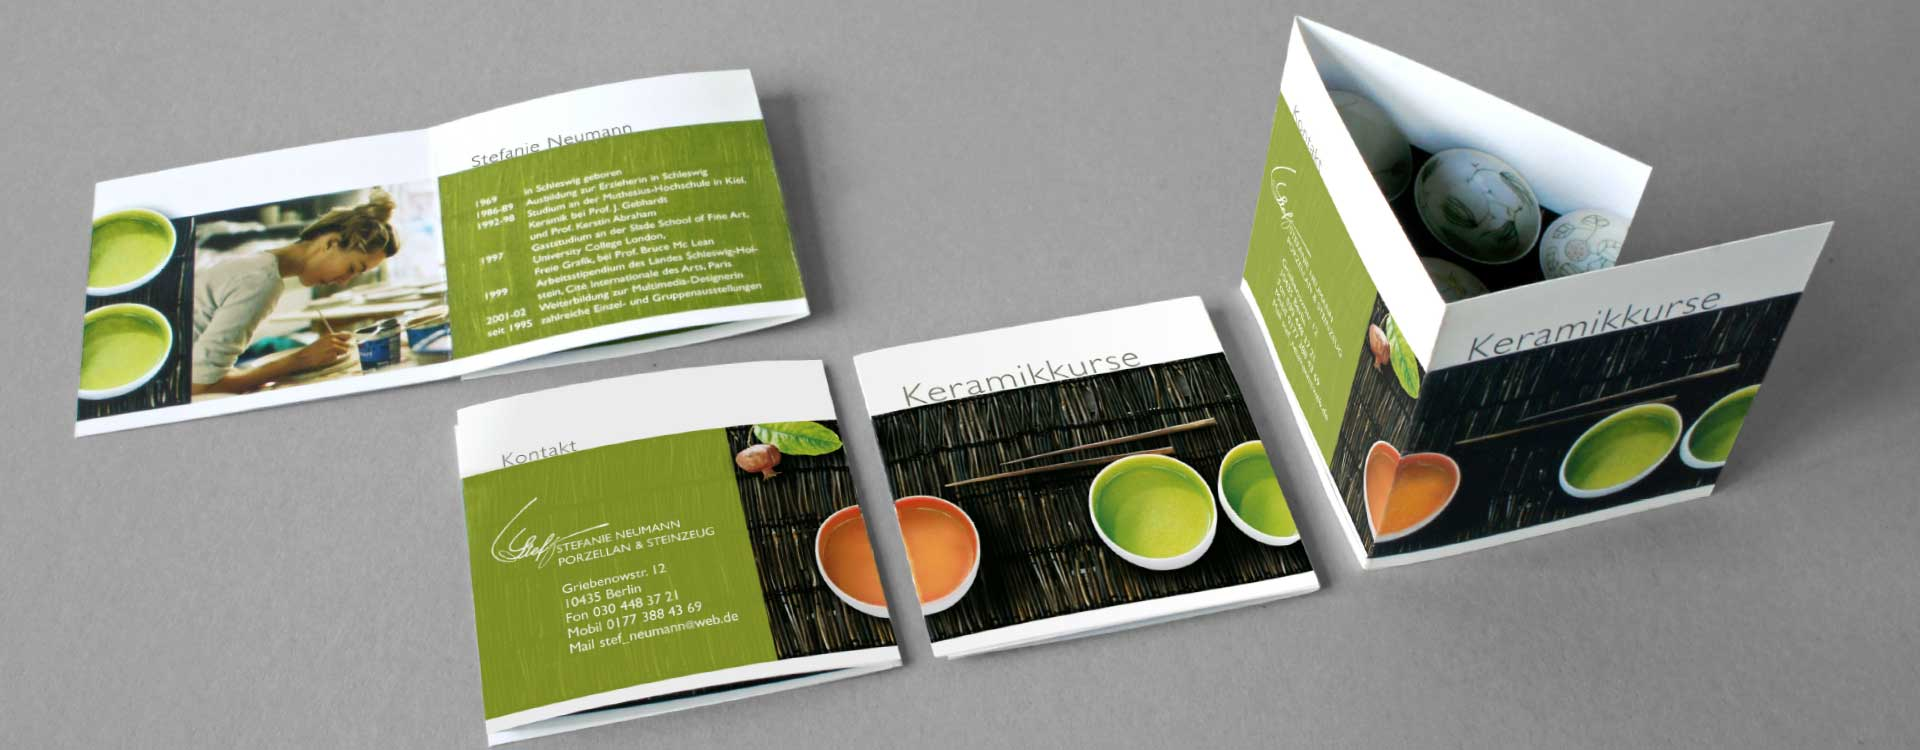 Leaflet for Stefanie Neumann; Design: Kattrin Richter | Graphic Design Studio